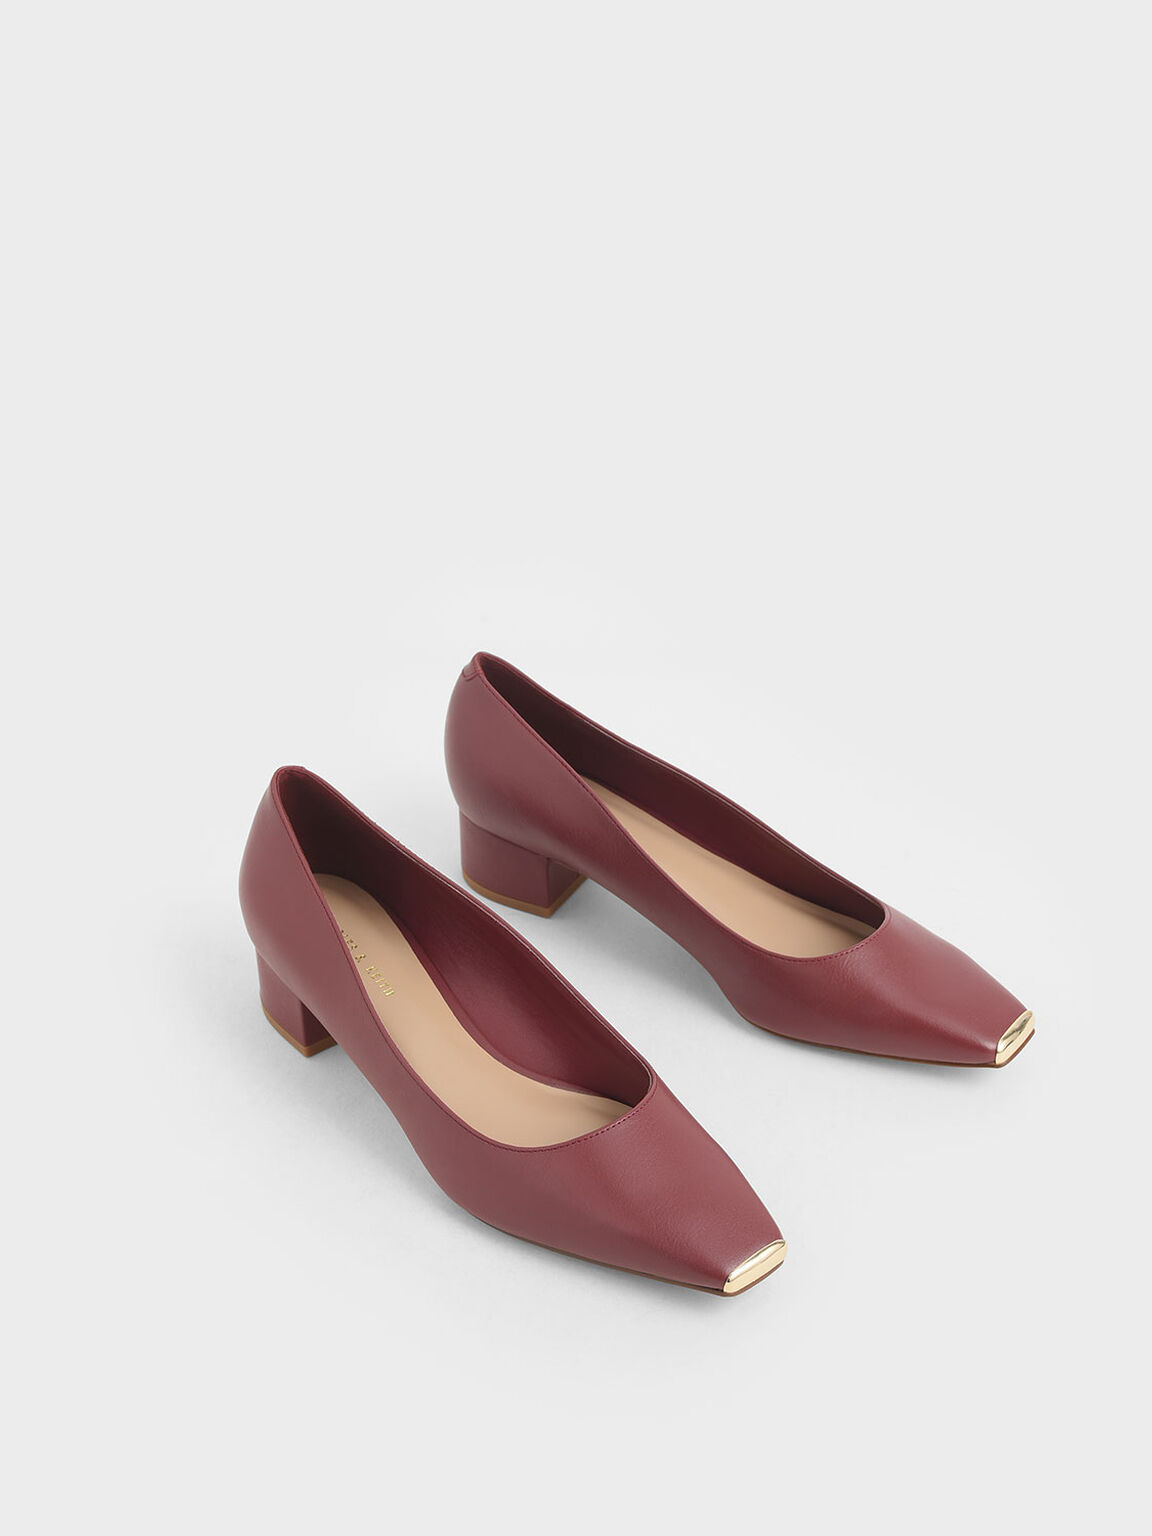 Chrome Tip Pumps, Prune, hi-res